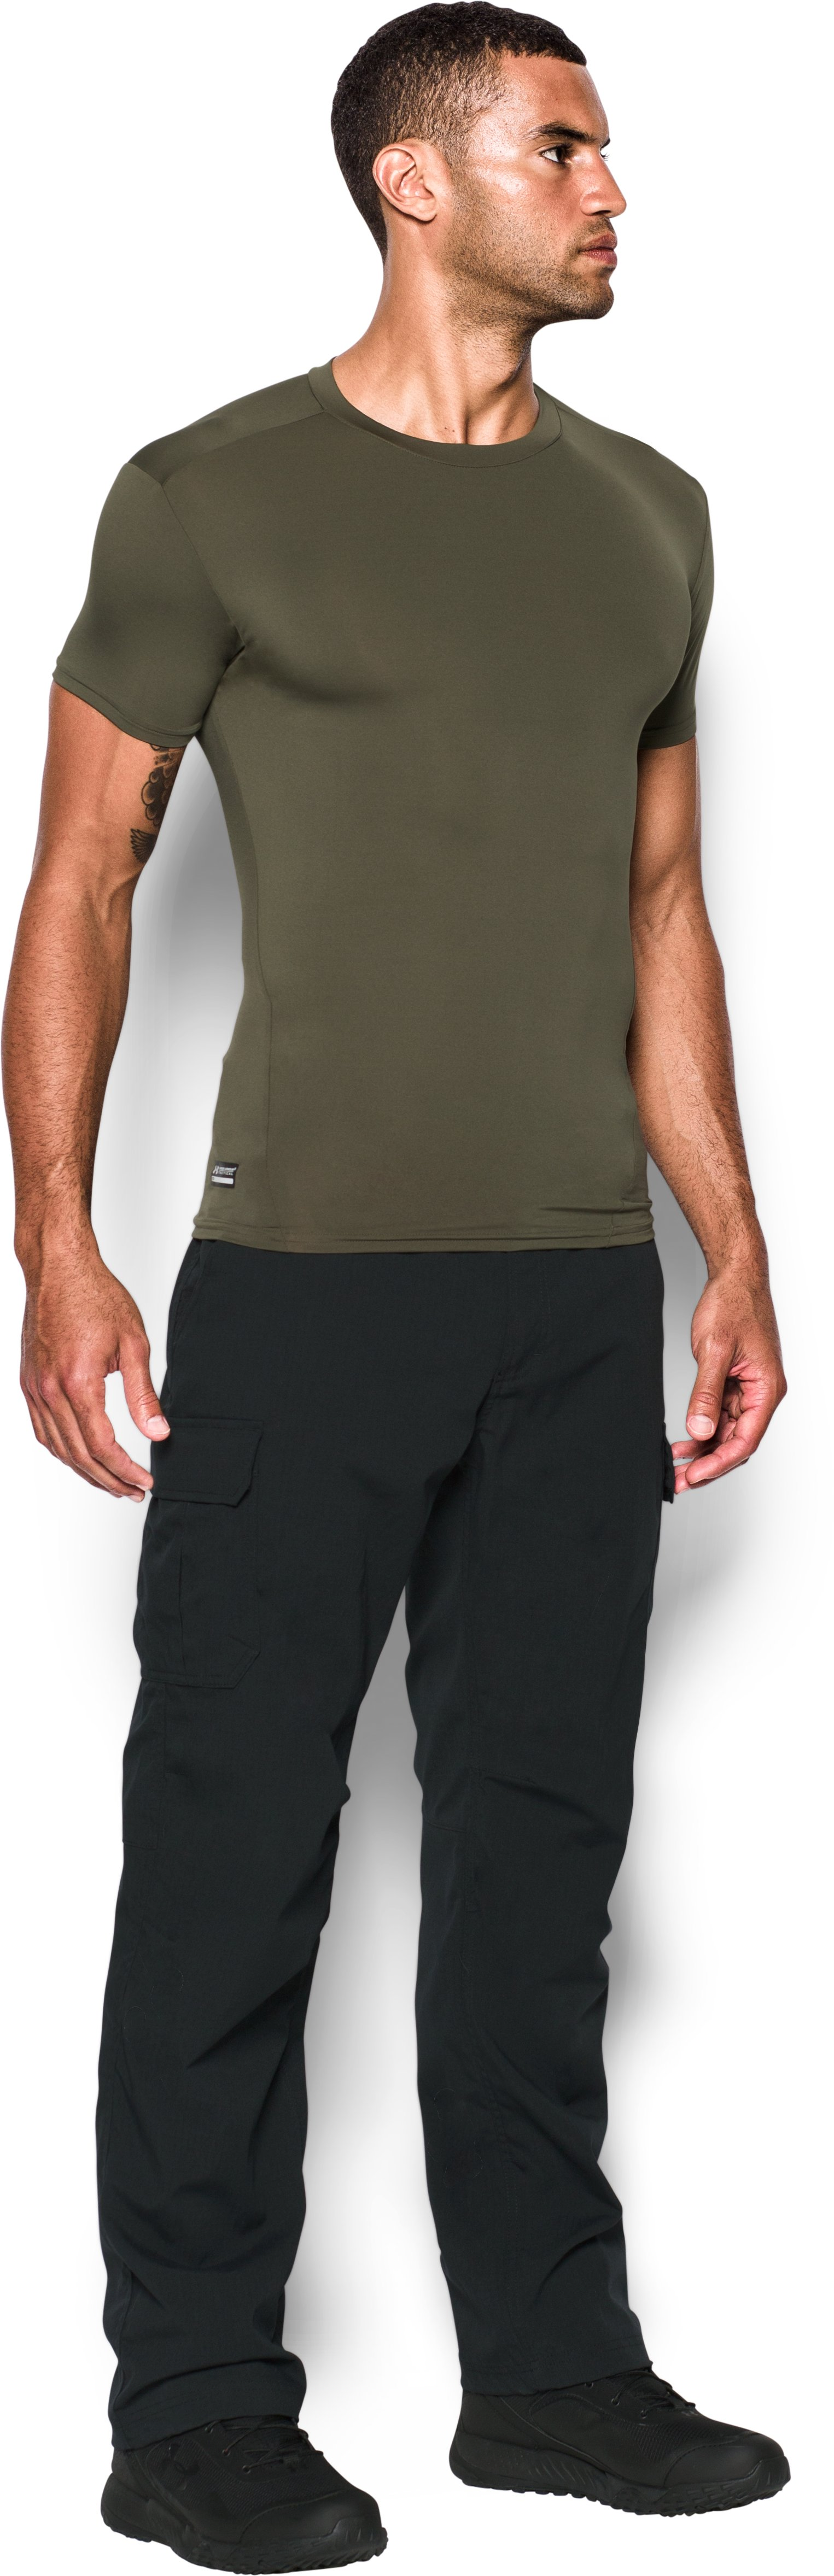 Men's Tactical HeatGear® Compression Short Sleeve T-Shirt, Marine OD Green,